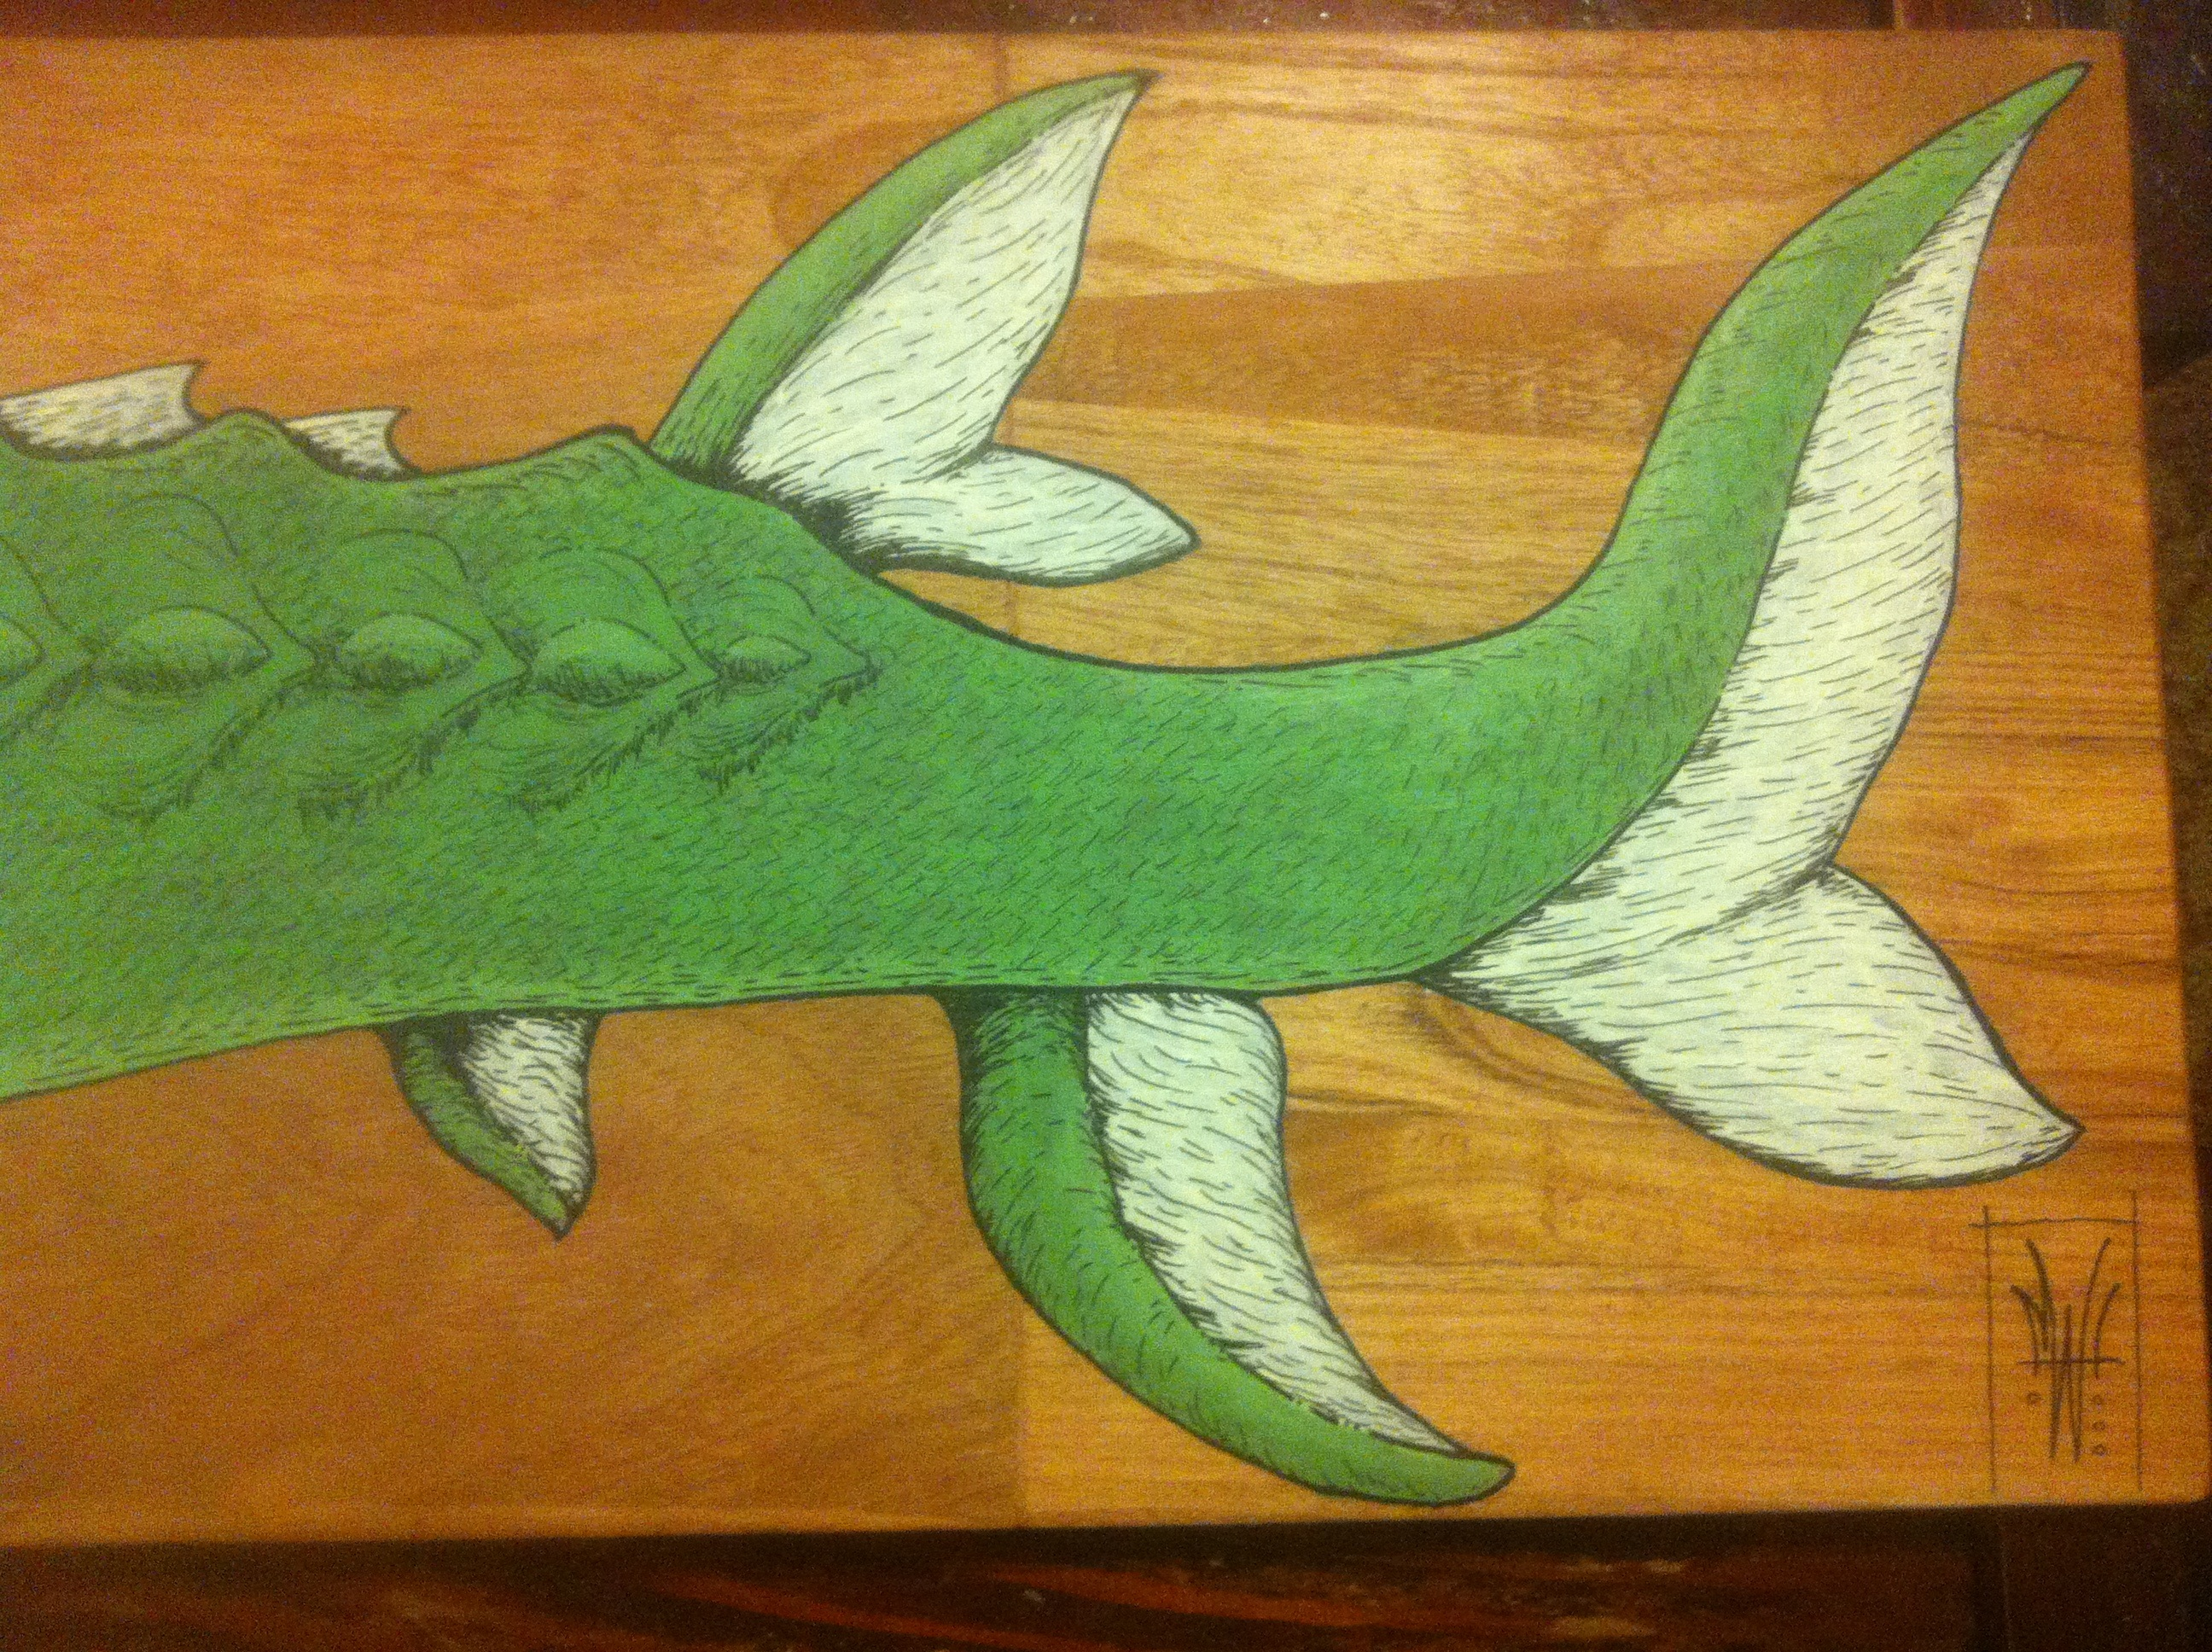 Finished close-up, tail